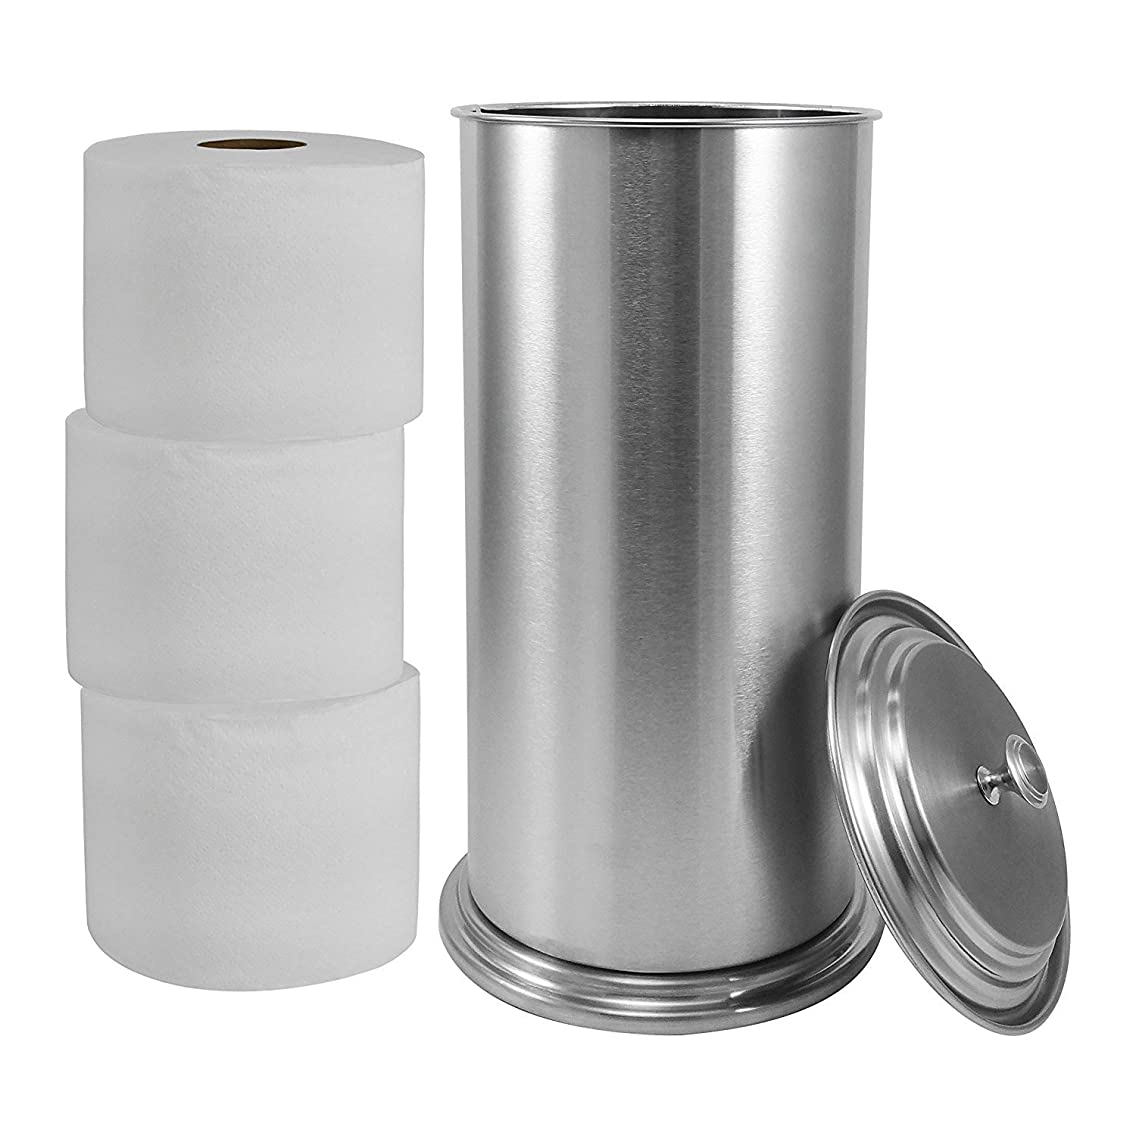 LDR 164 6466BN Freestanding Extra Toilet Paper Canister for Single Double and Extra Large Rolls Brushed Nickel Finish